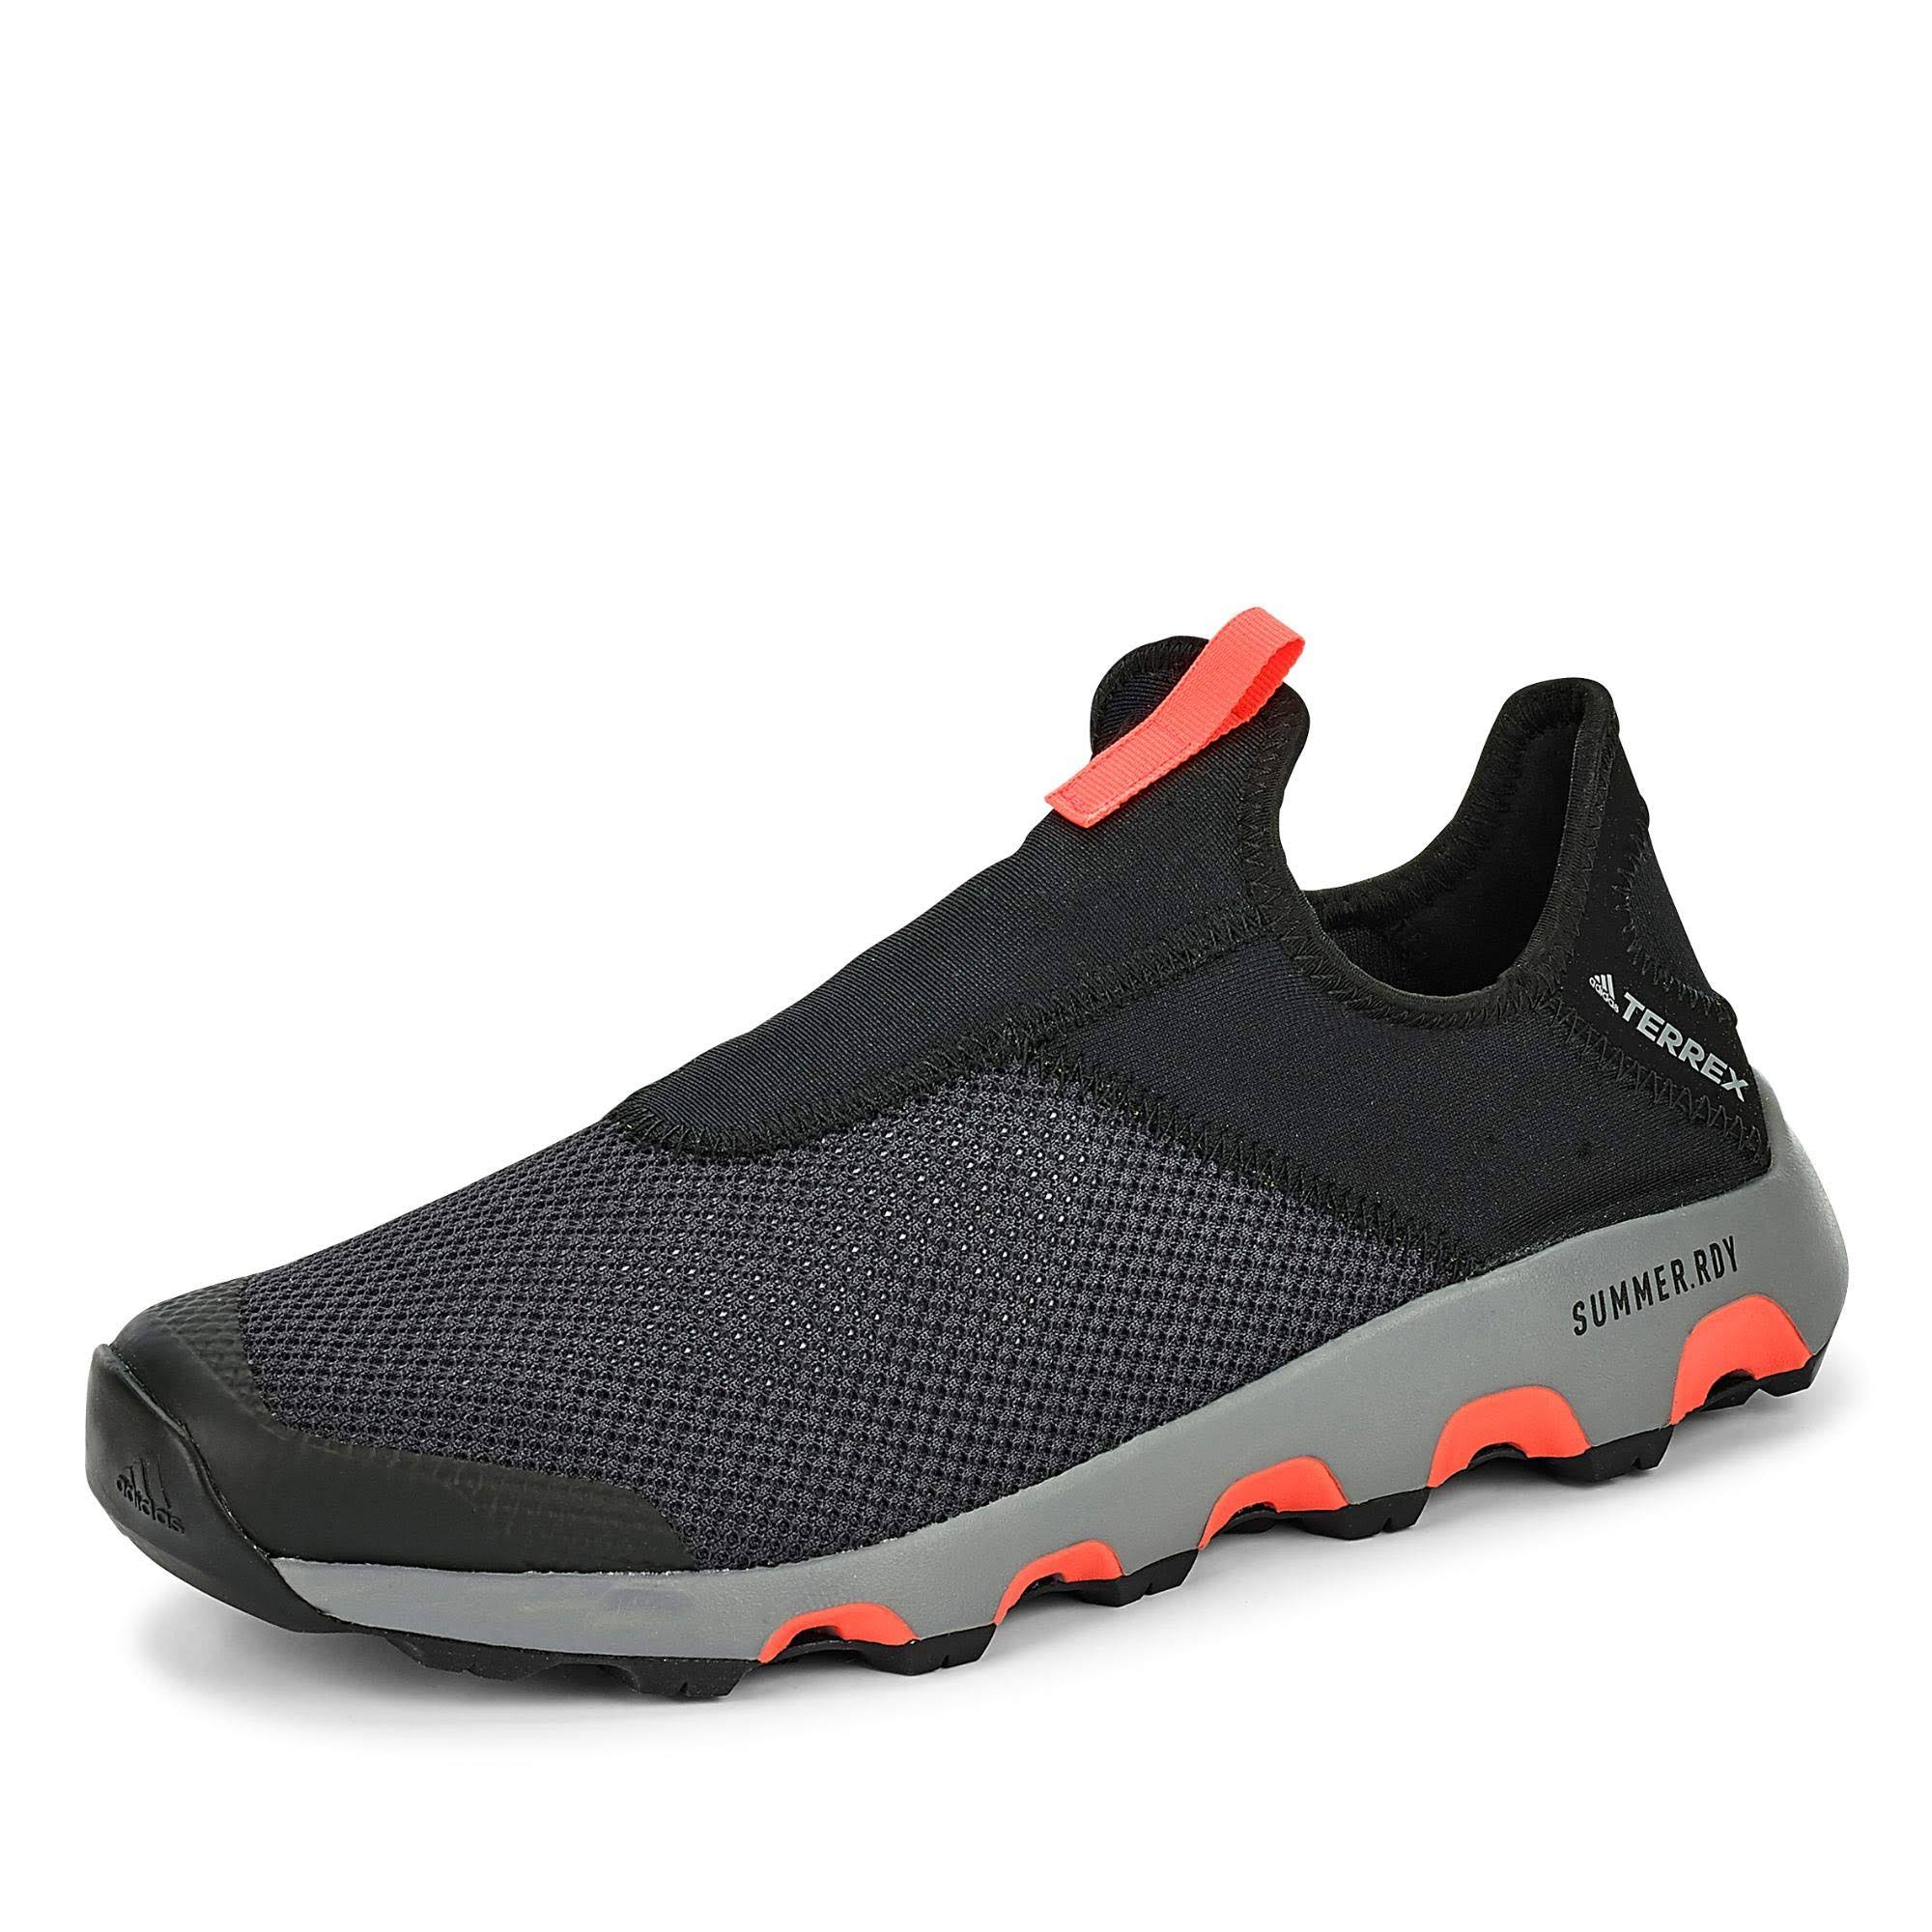 Adidas Terrex Climacool Voyager Slip-On Shoes Hiking - Black - Men